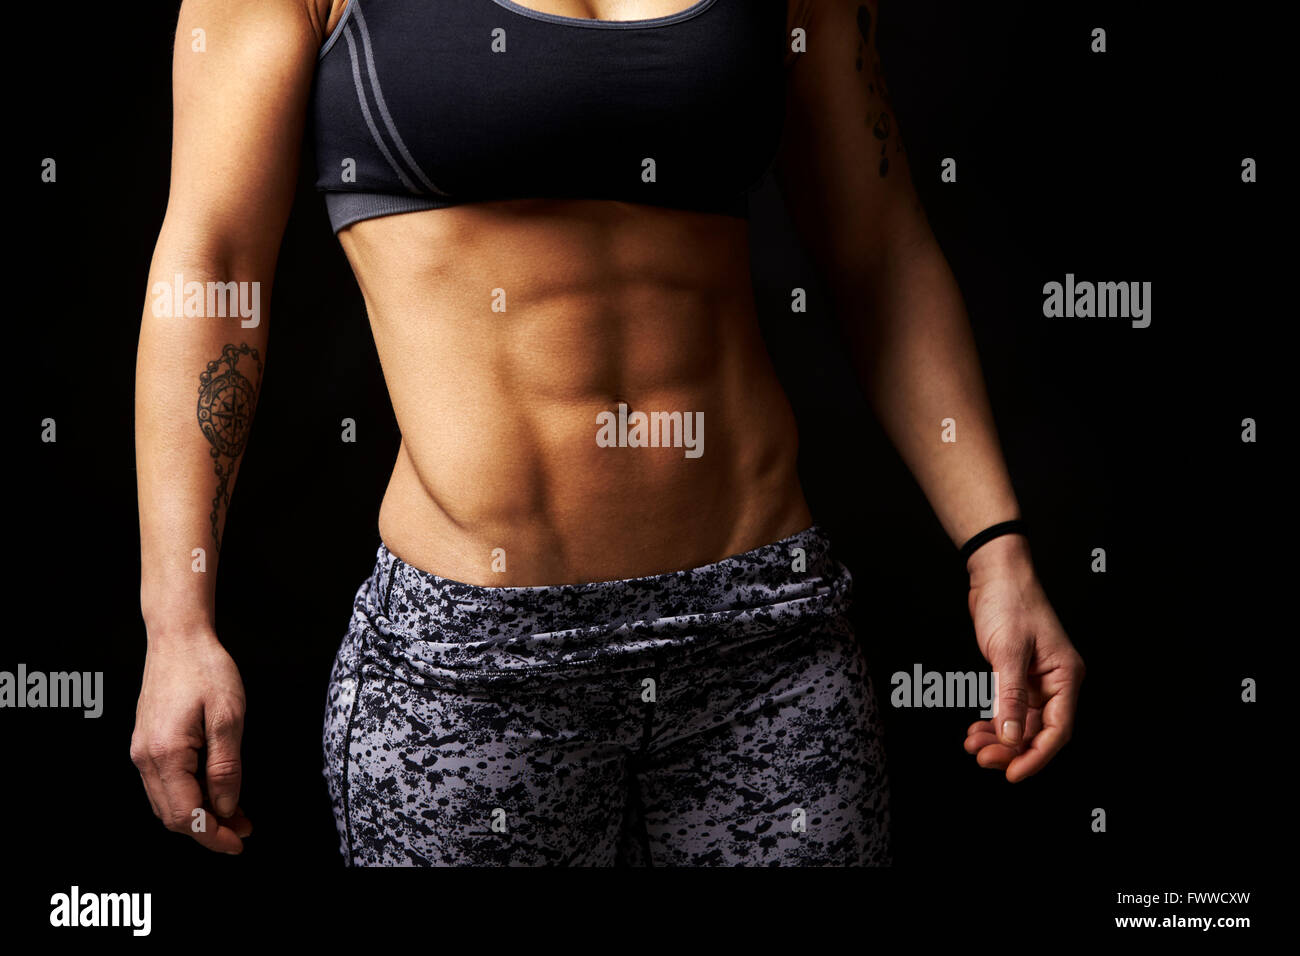 Mid-section crop shot of muscular young woman's abs and arms - Stock Image